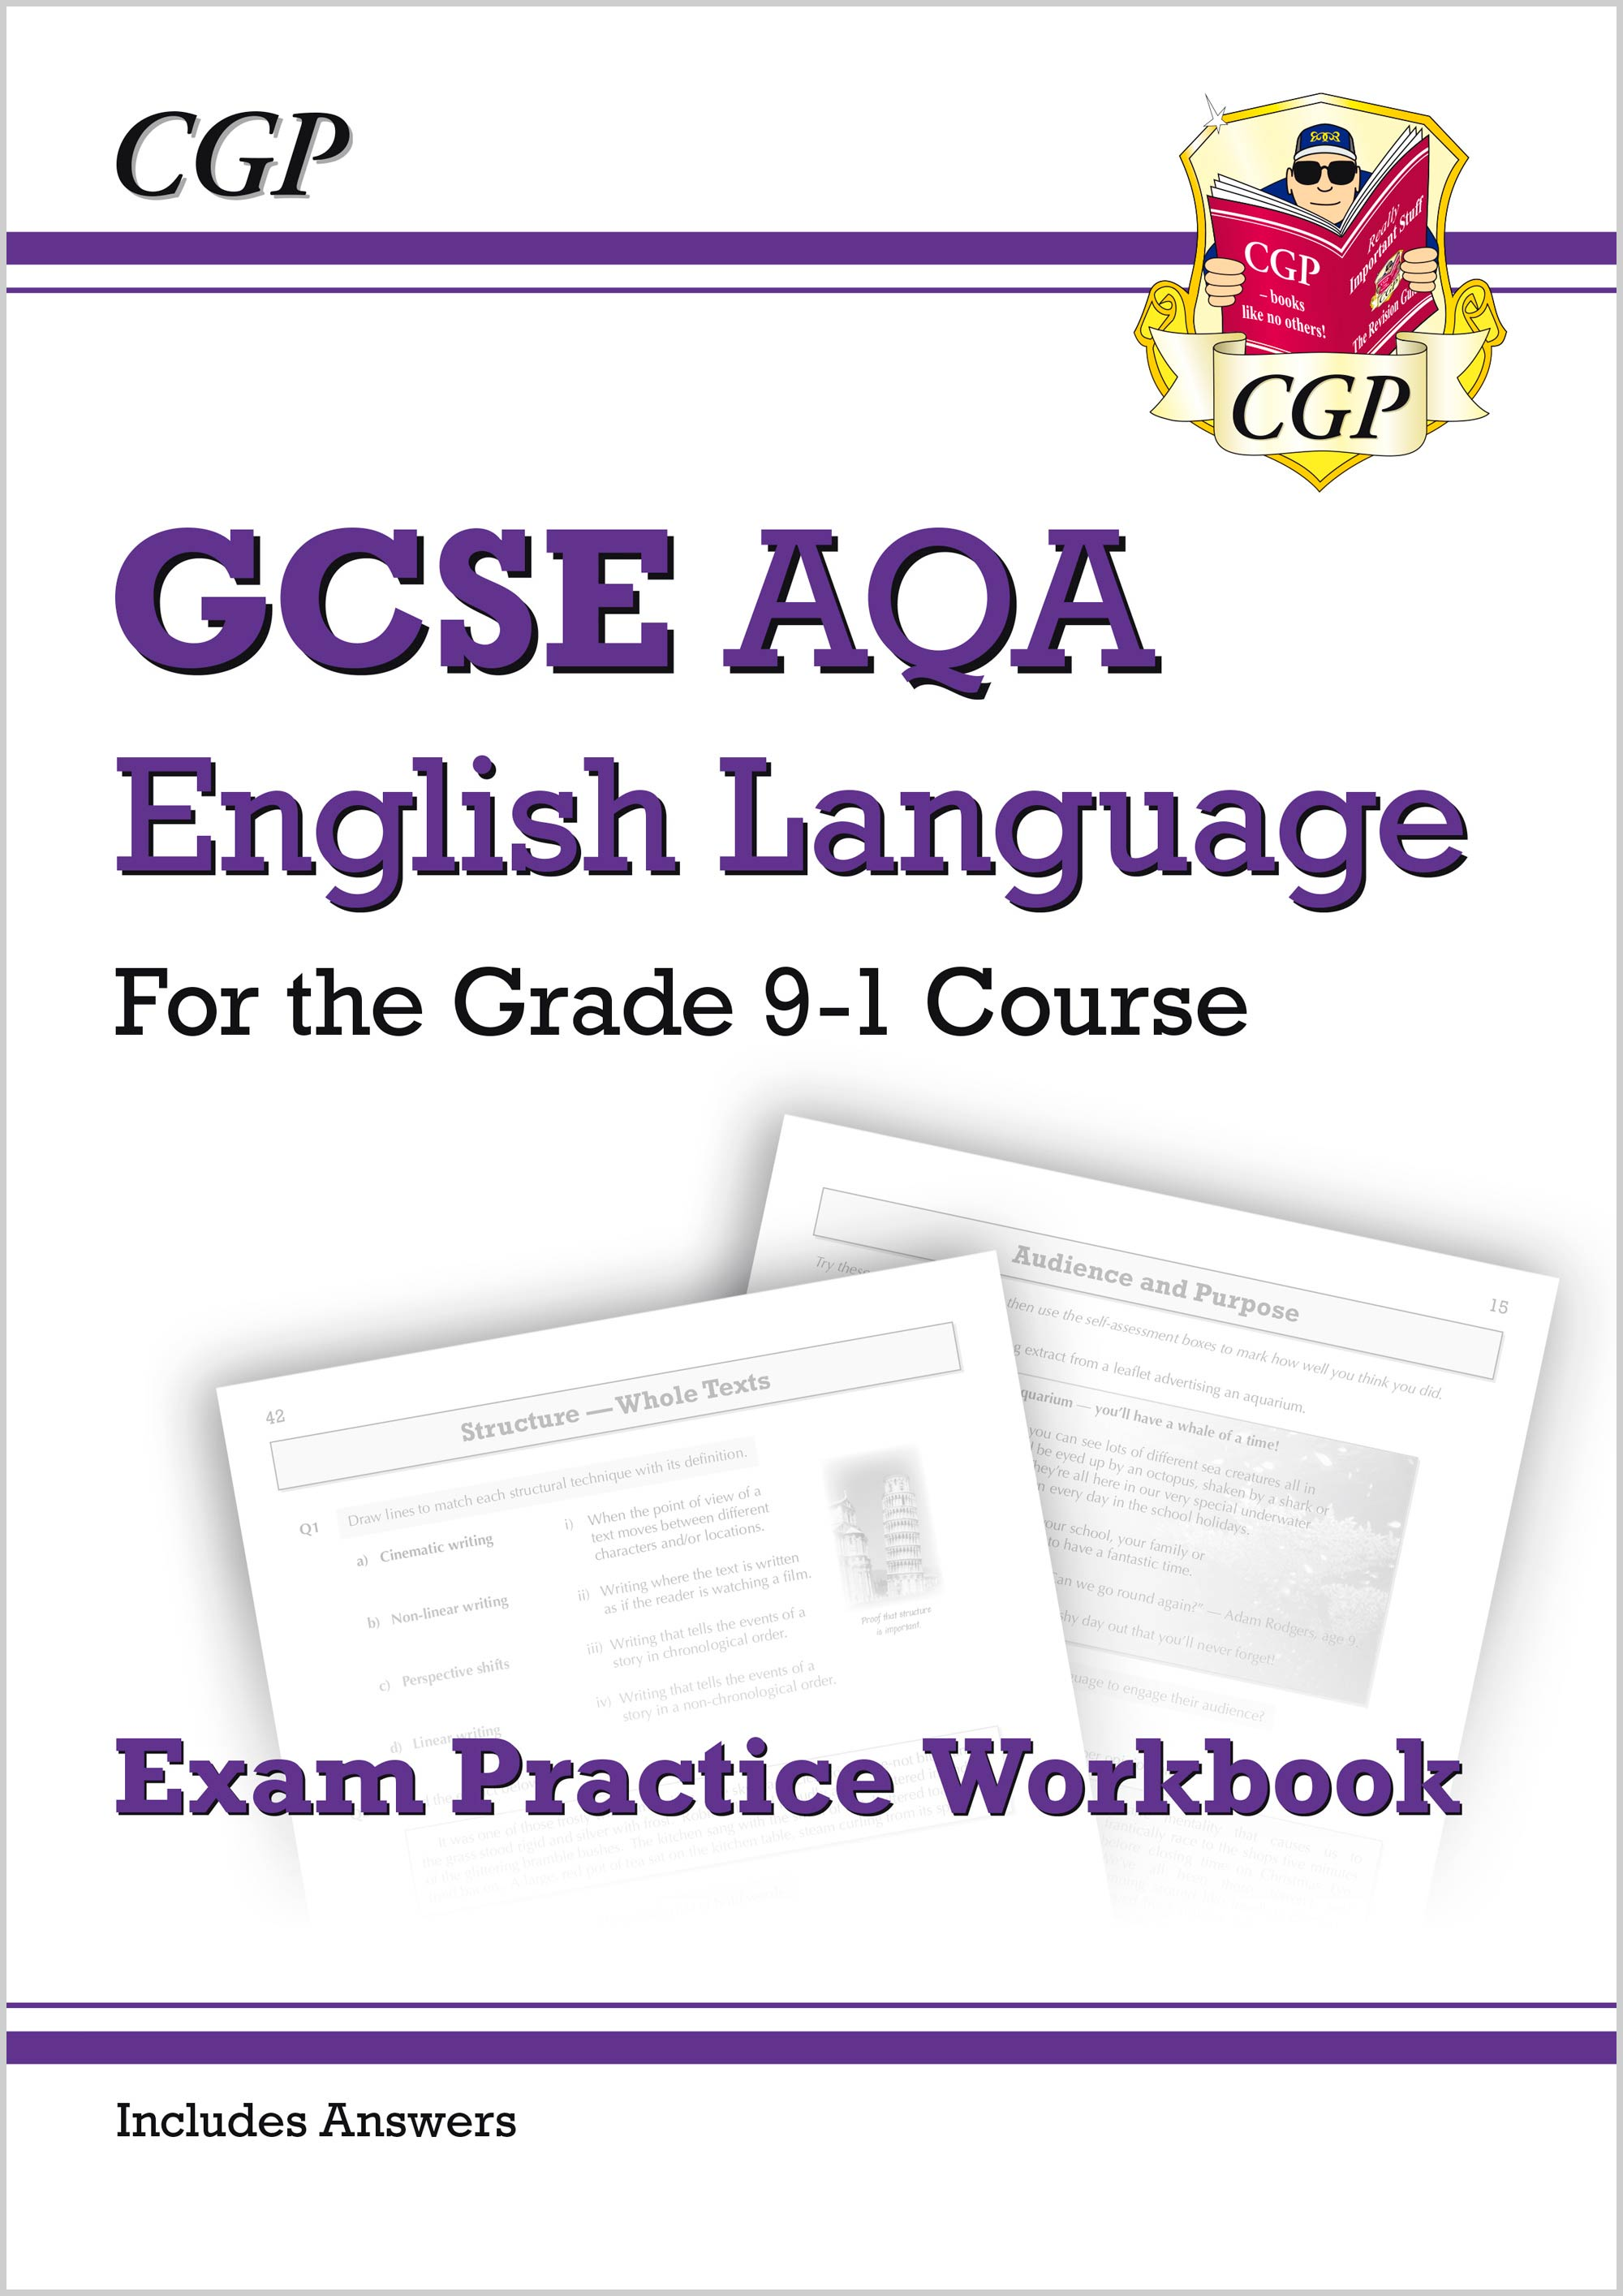 ENAW41 - GCSE English Language AQA Exam Practice Workbook - for the Grade 9-1 Course (includes Answe